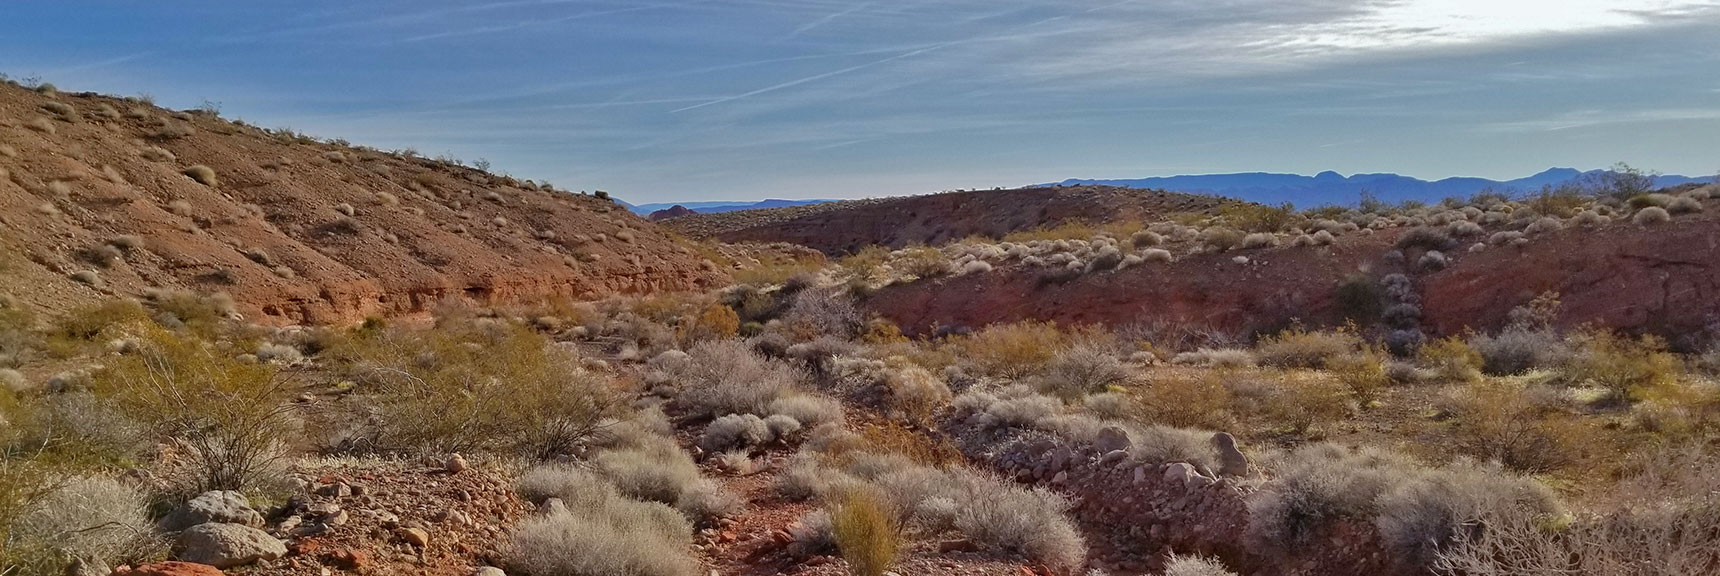 Begin to Navigate Desert Washes Traveling East on Old Arrowhead Trail in Valley of Fire State Park, Nevada